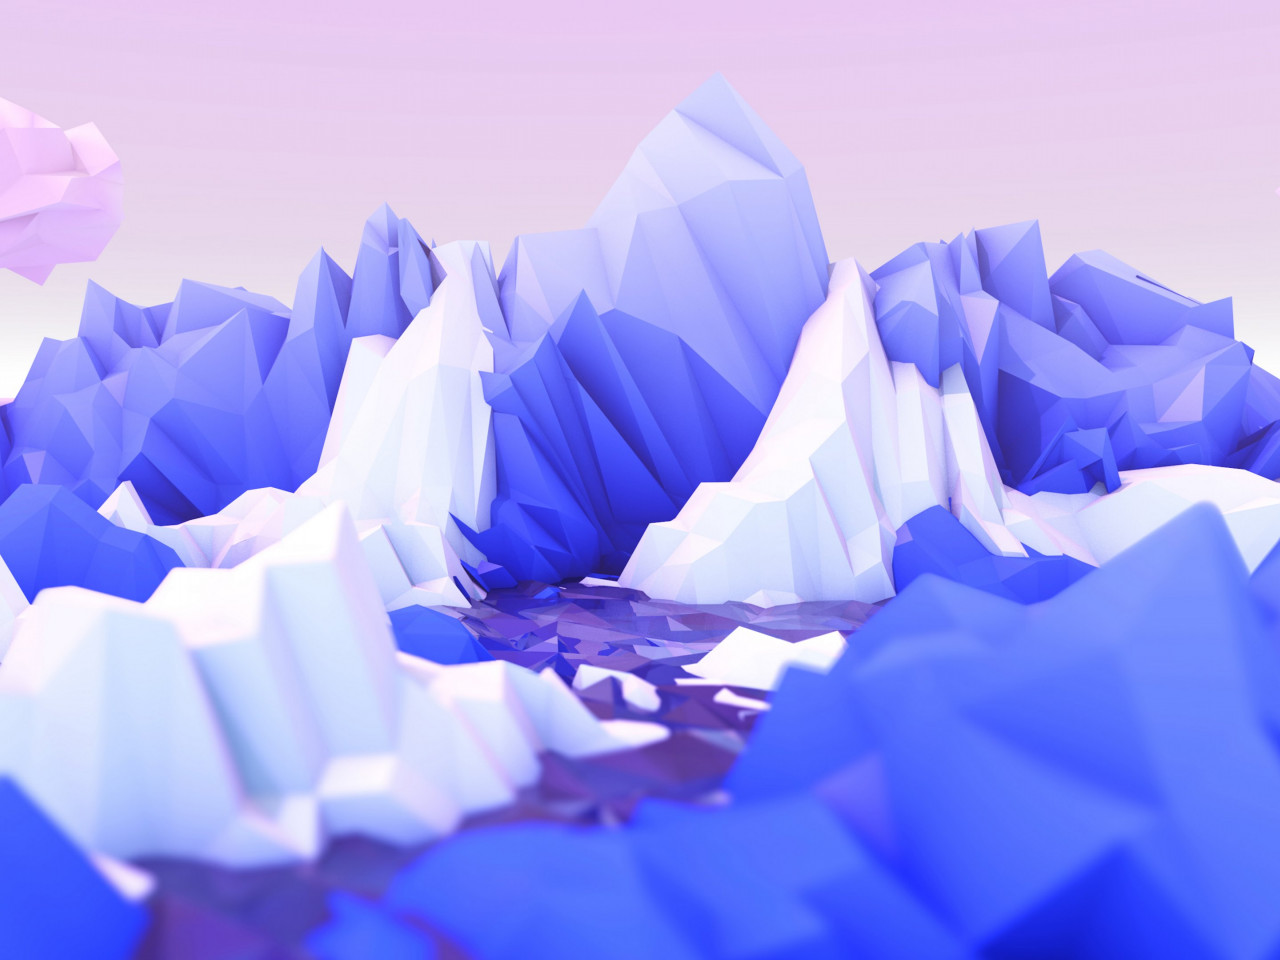 Low poly graphic design wallpaper 1280x960